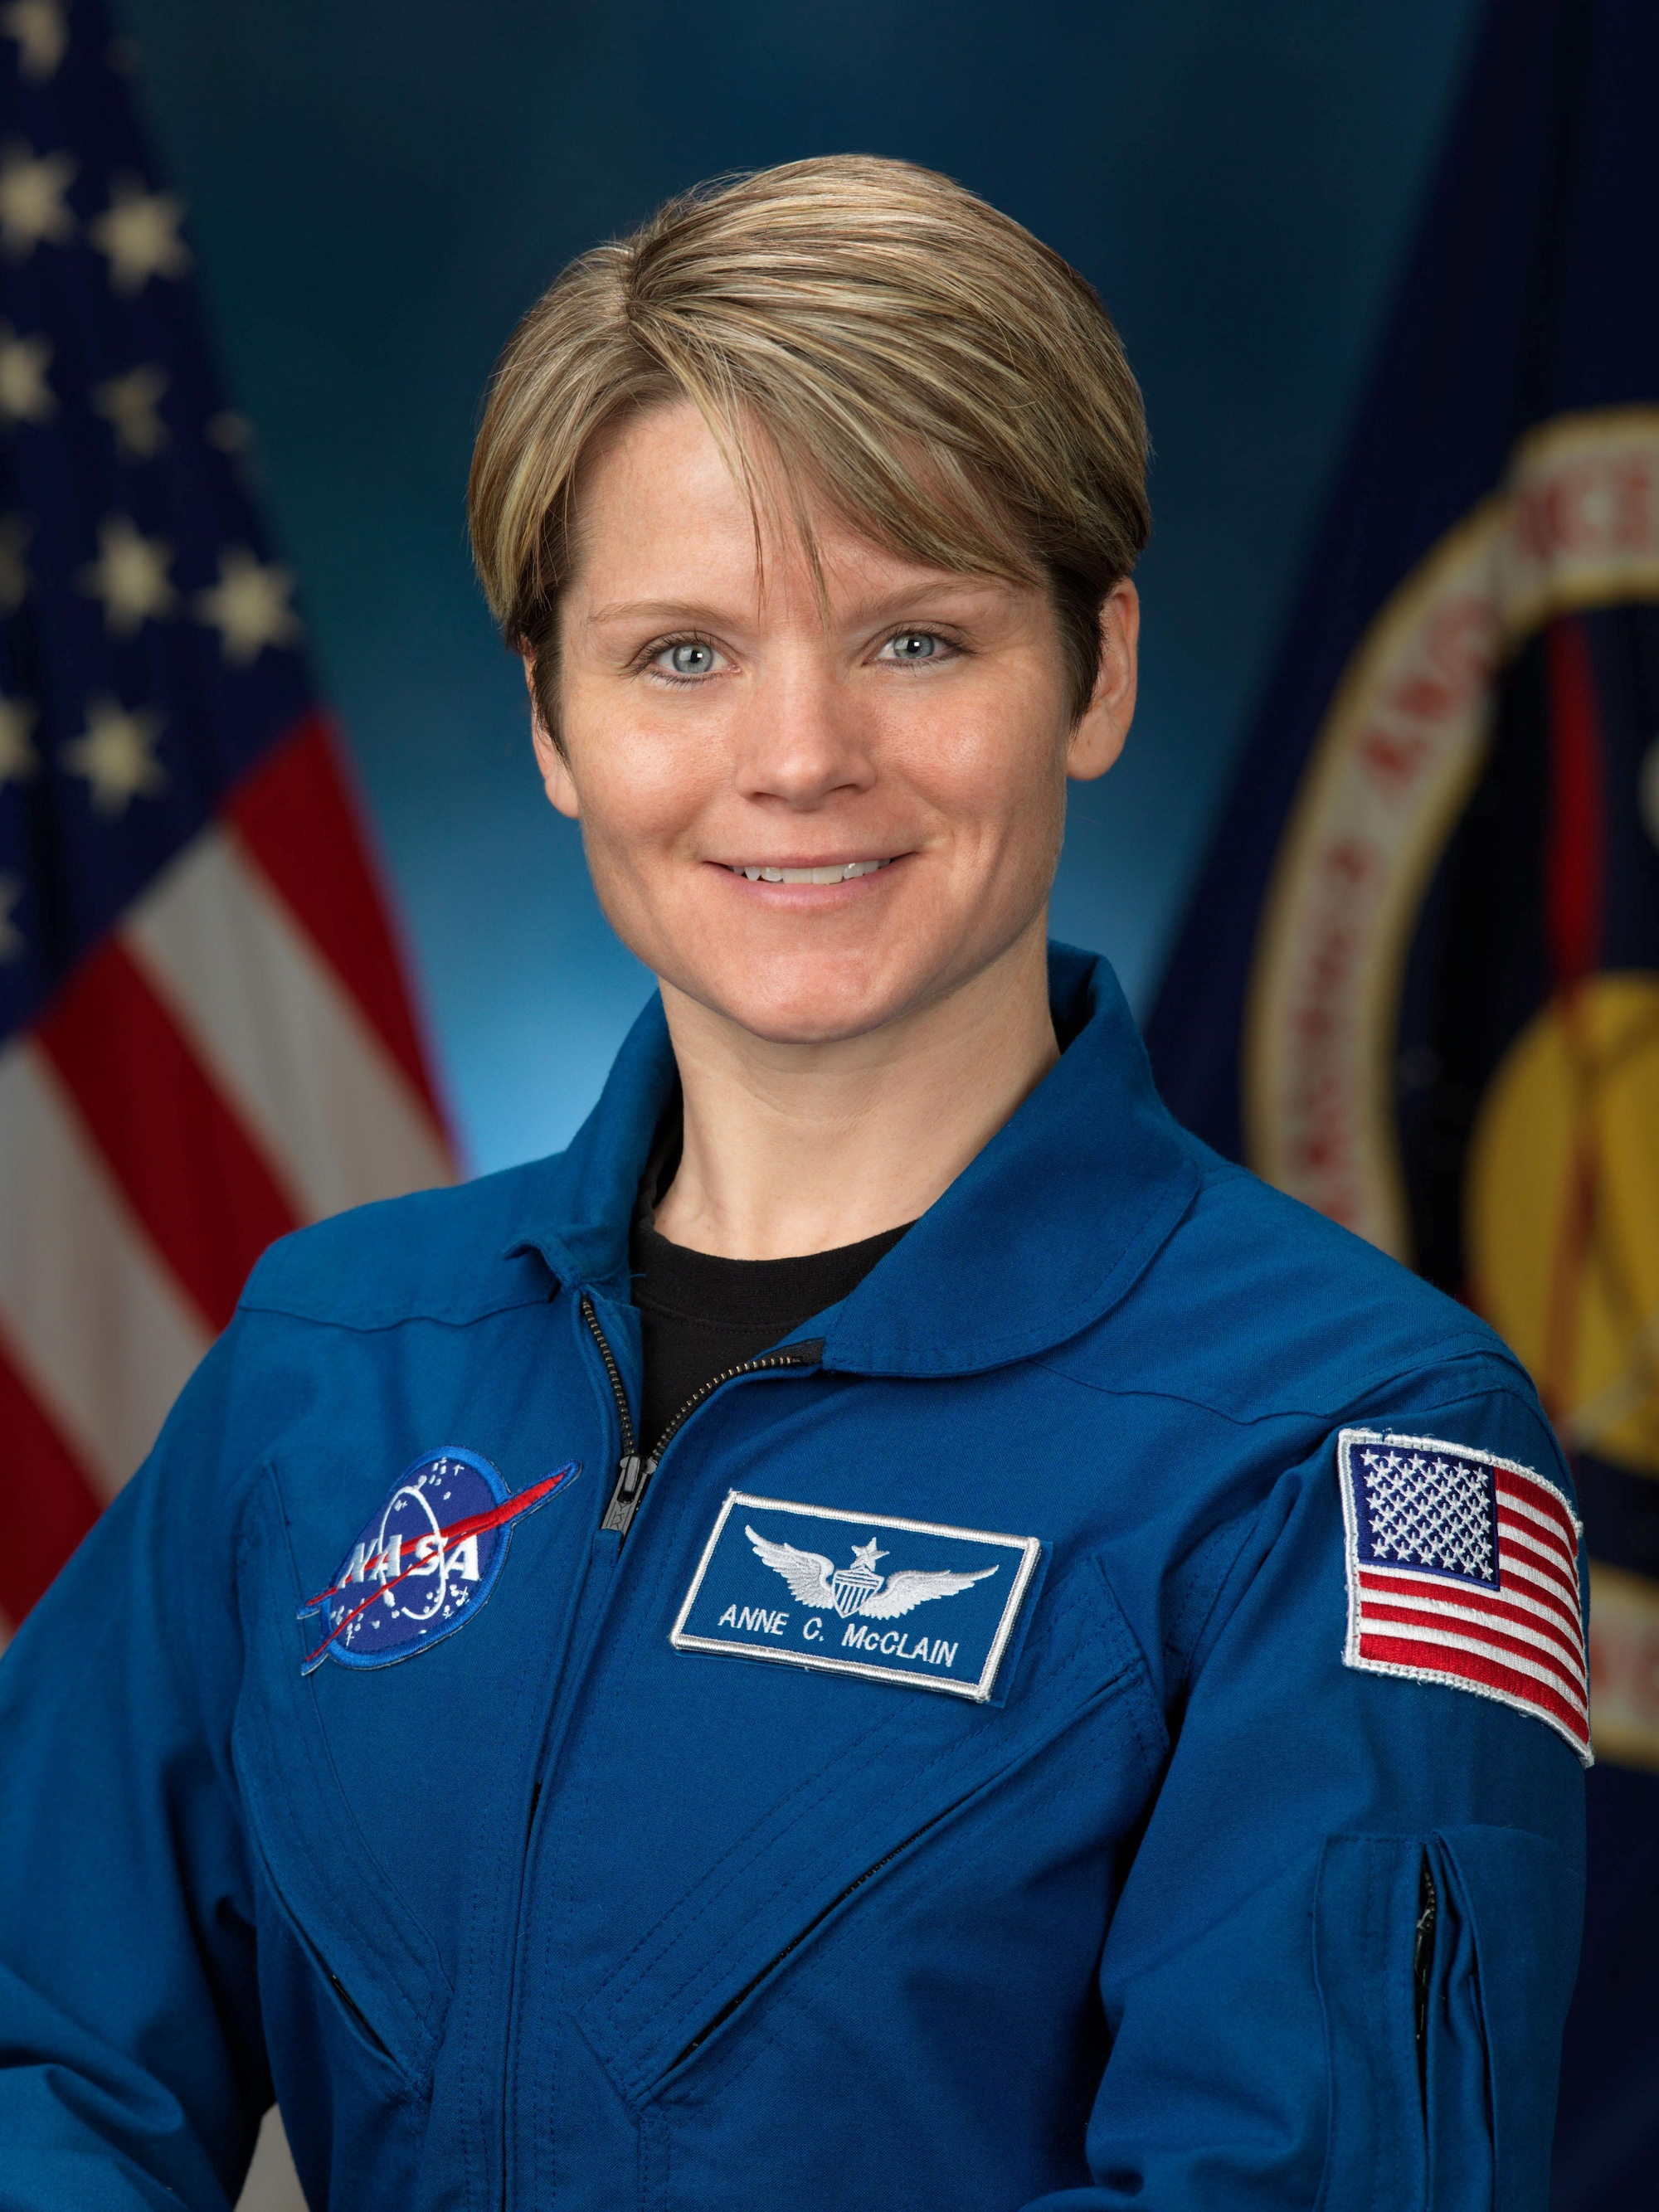 After aborted mission, NASA astronaut confident about December launch